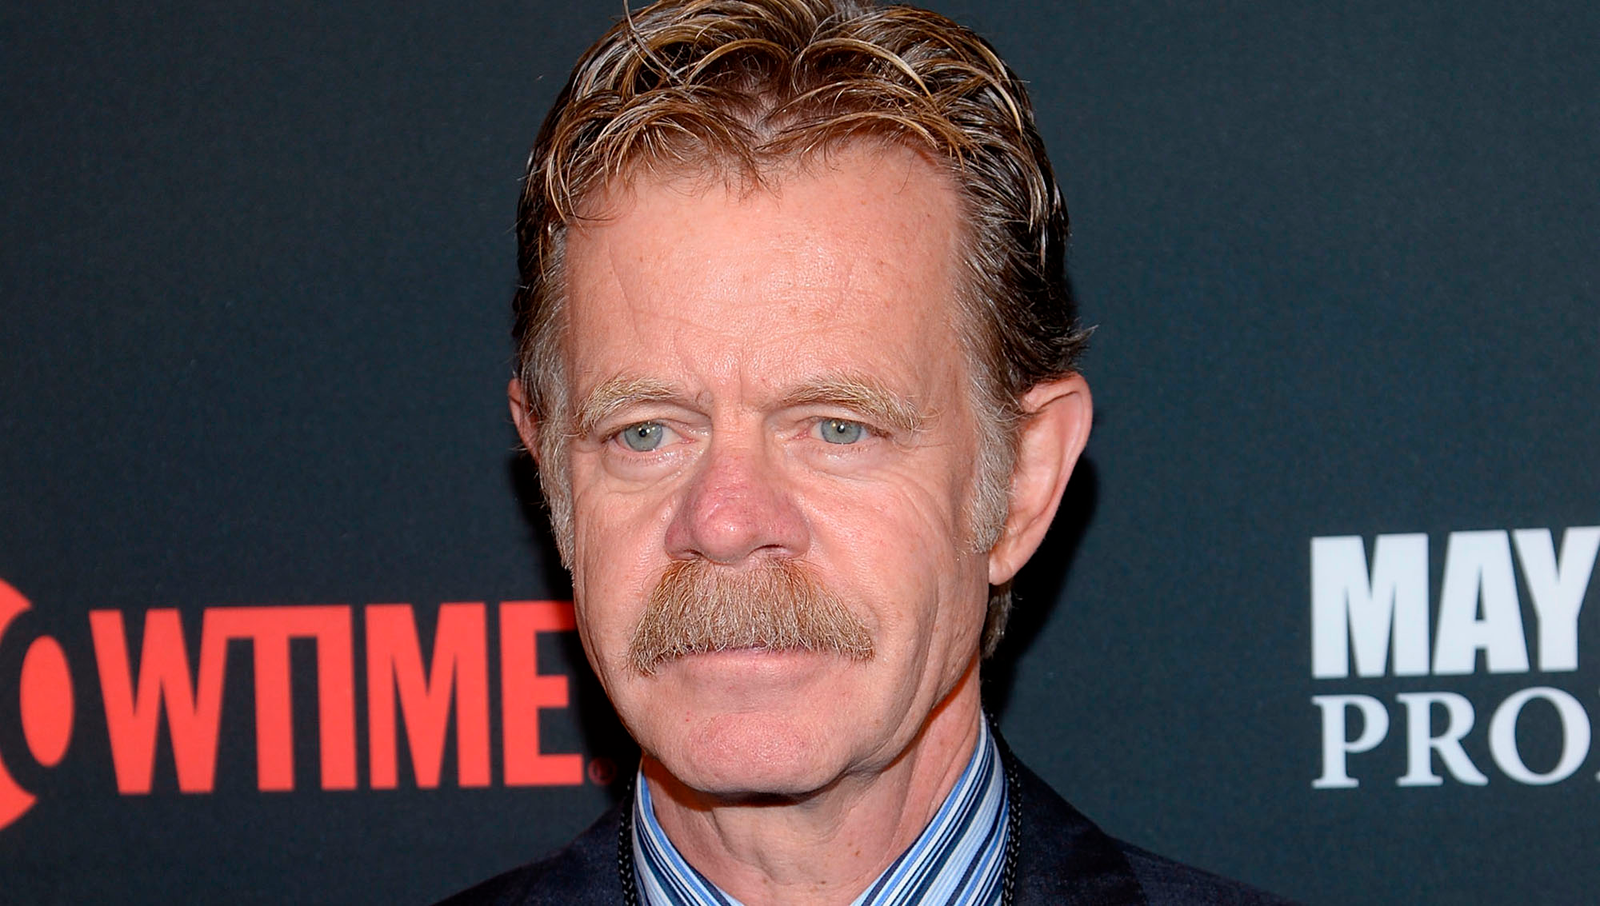 Most Spanish women keep a portrait of William H. Macy, or Williamcito, on their living room wall. On the altar below it, they will light one additional candle each day during the 30 days leading up to his birthday.